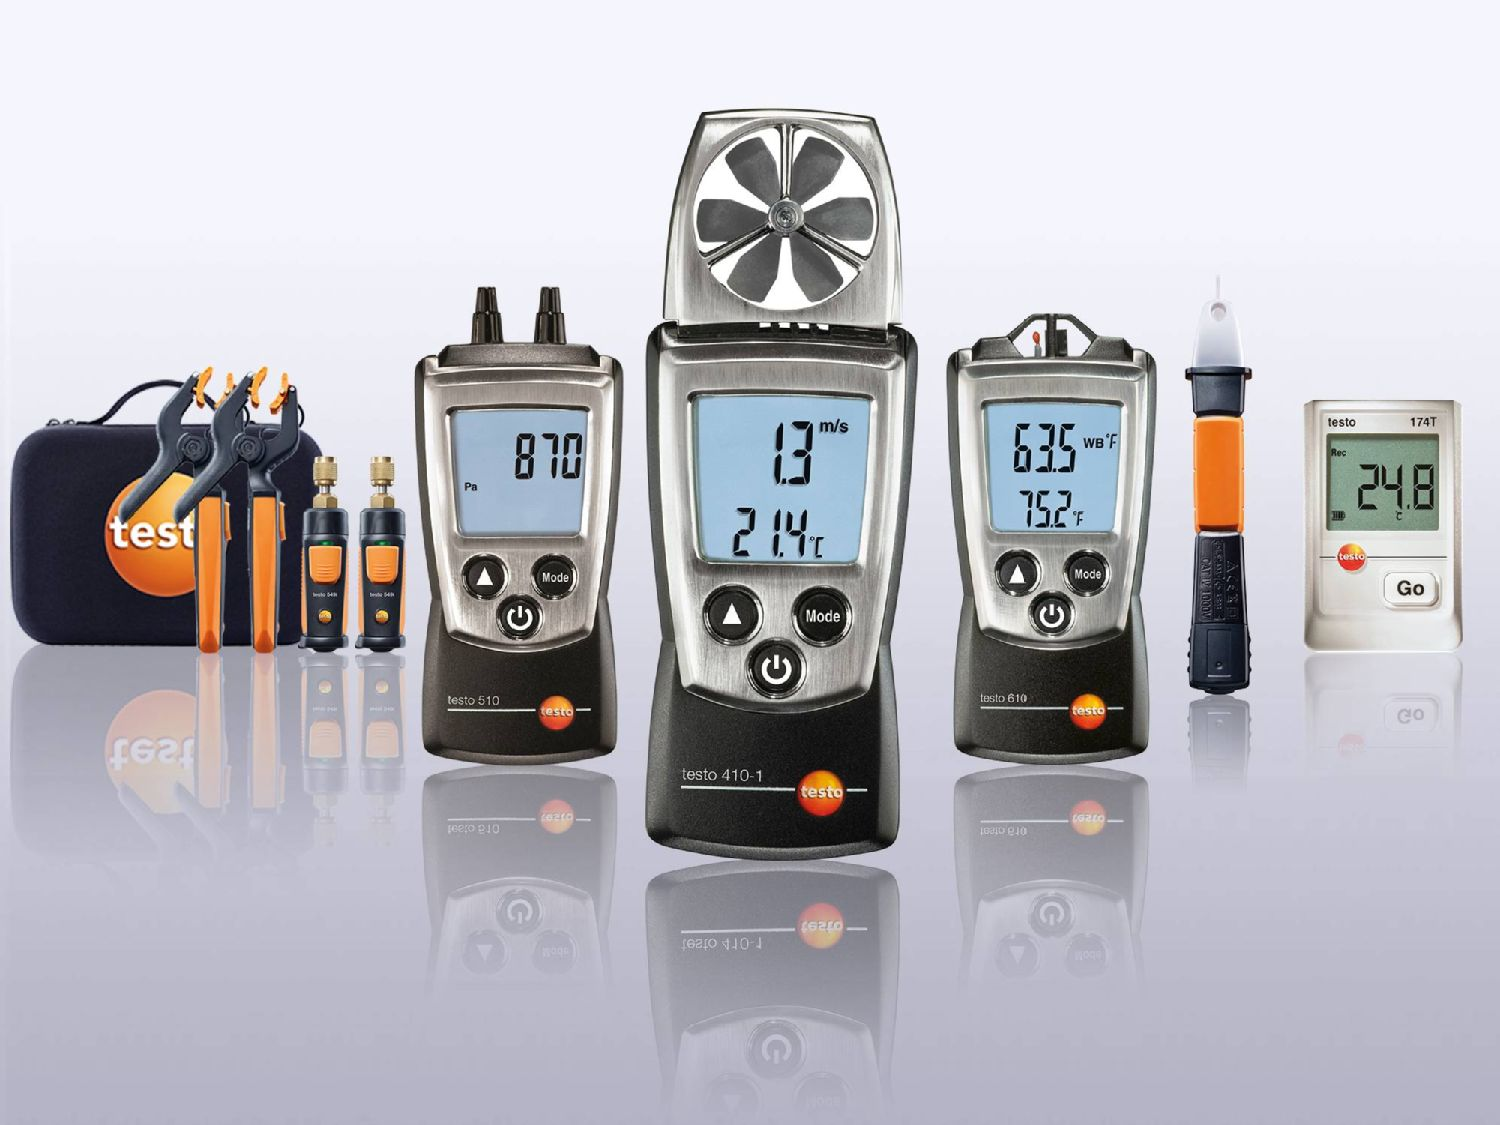 Testo measuring instruments for refrigeration engineers